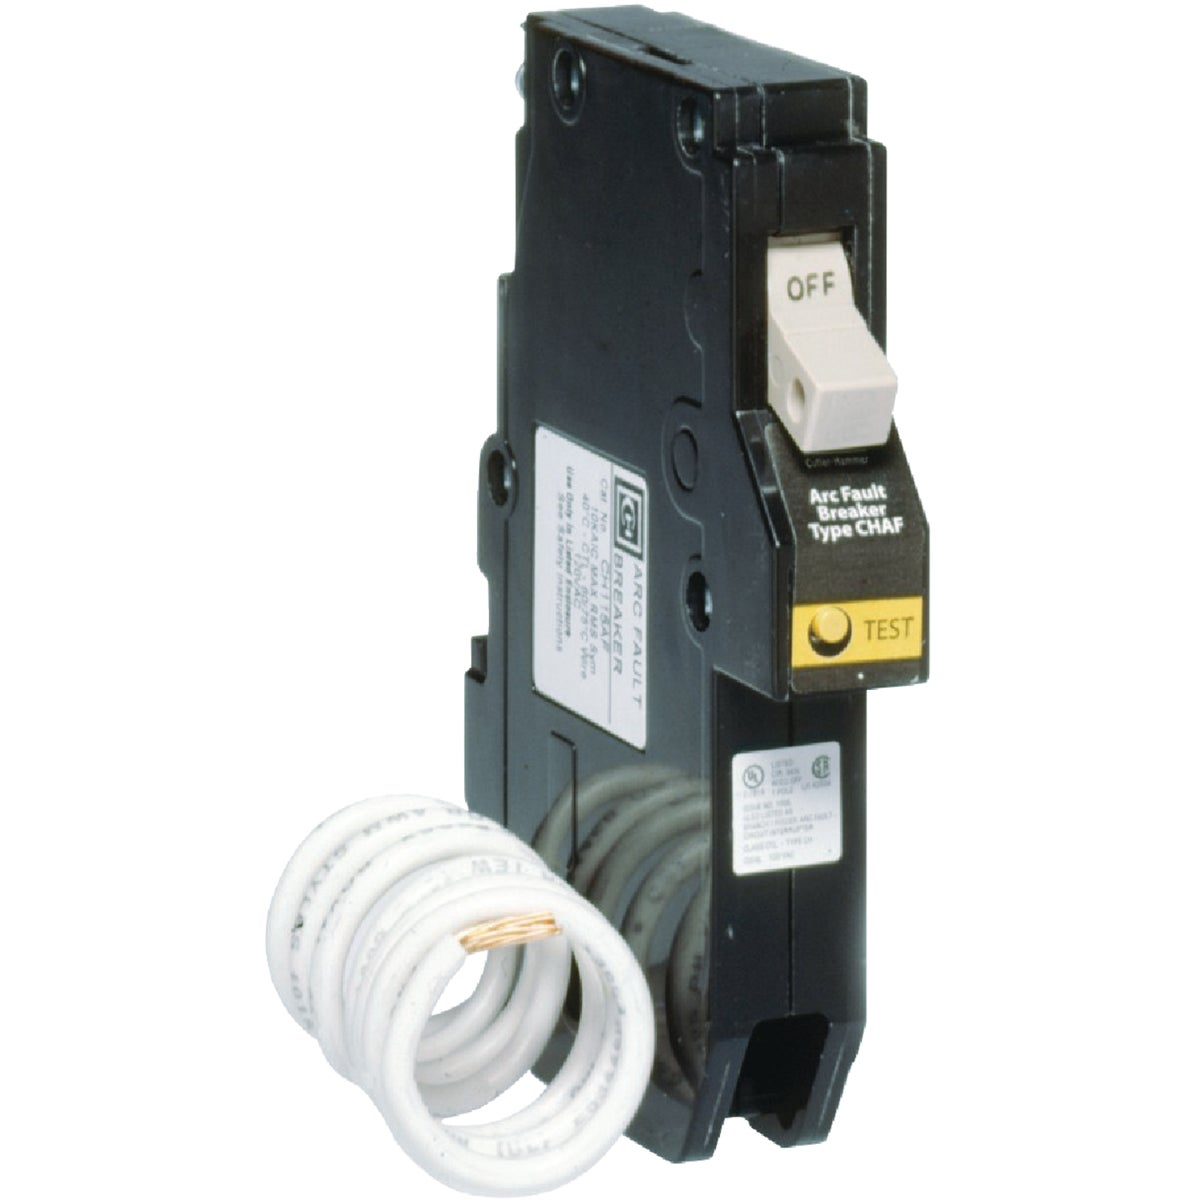 20A AFCI CIRCUIT BREAKER - CHFCAF120 by Eaton Corporation